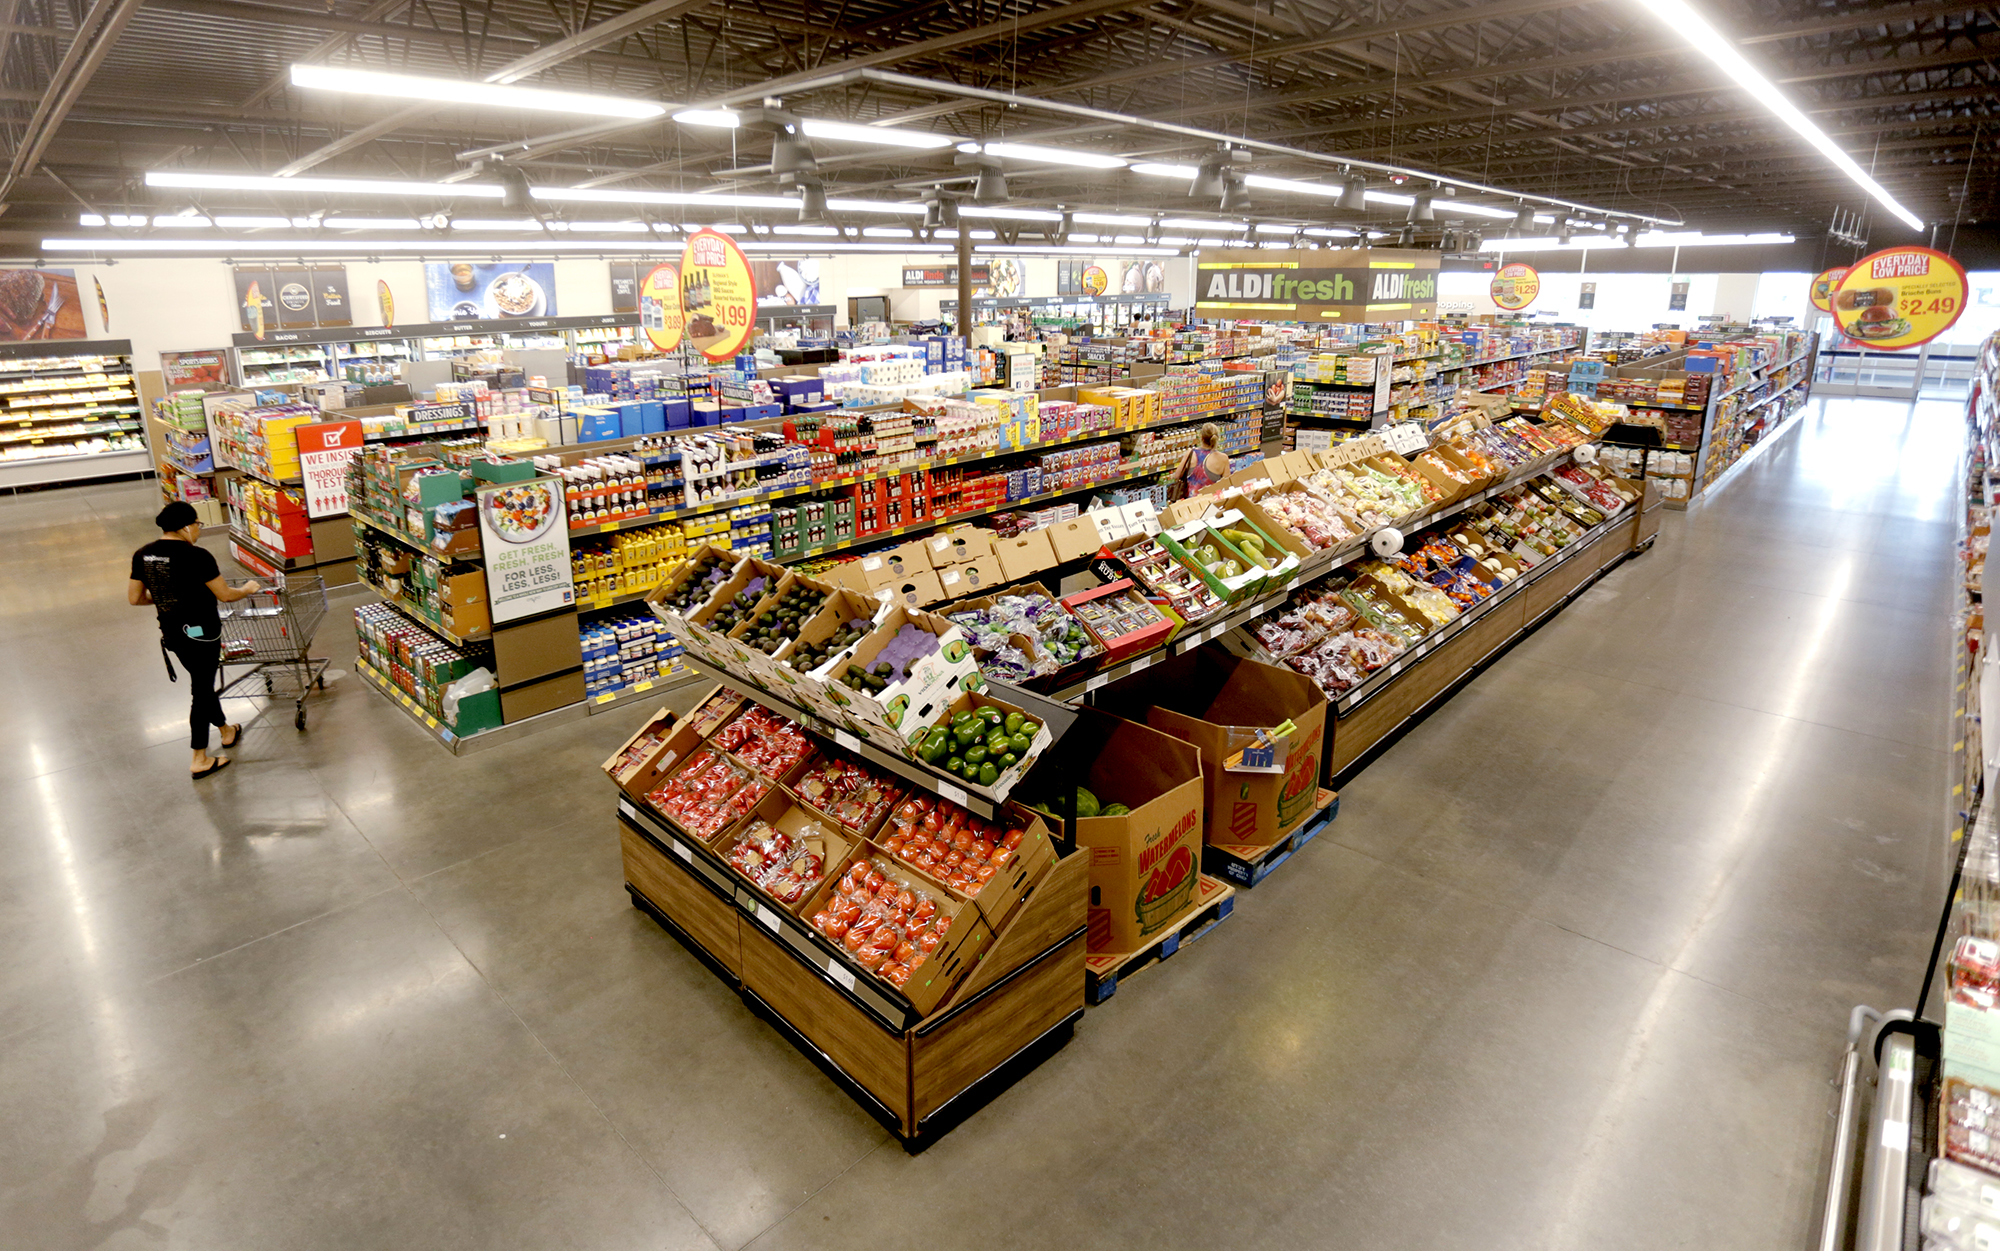 Aldi is planning a store for New Tampa